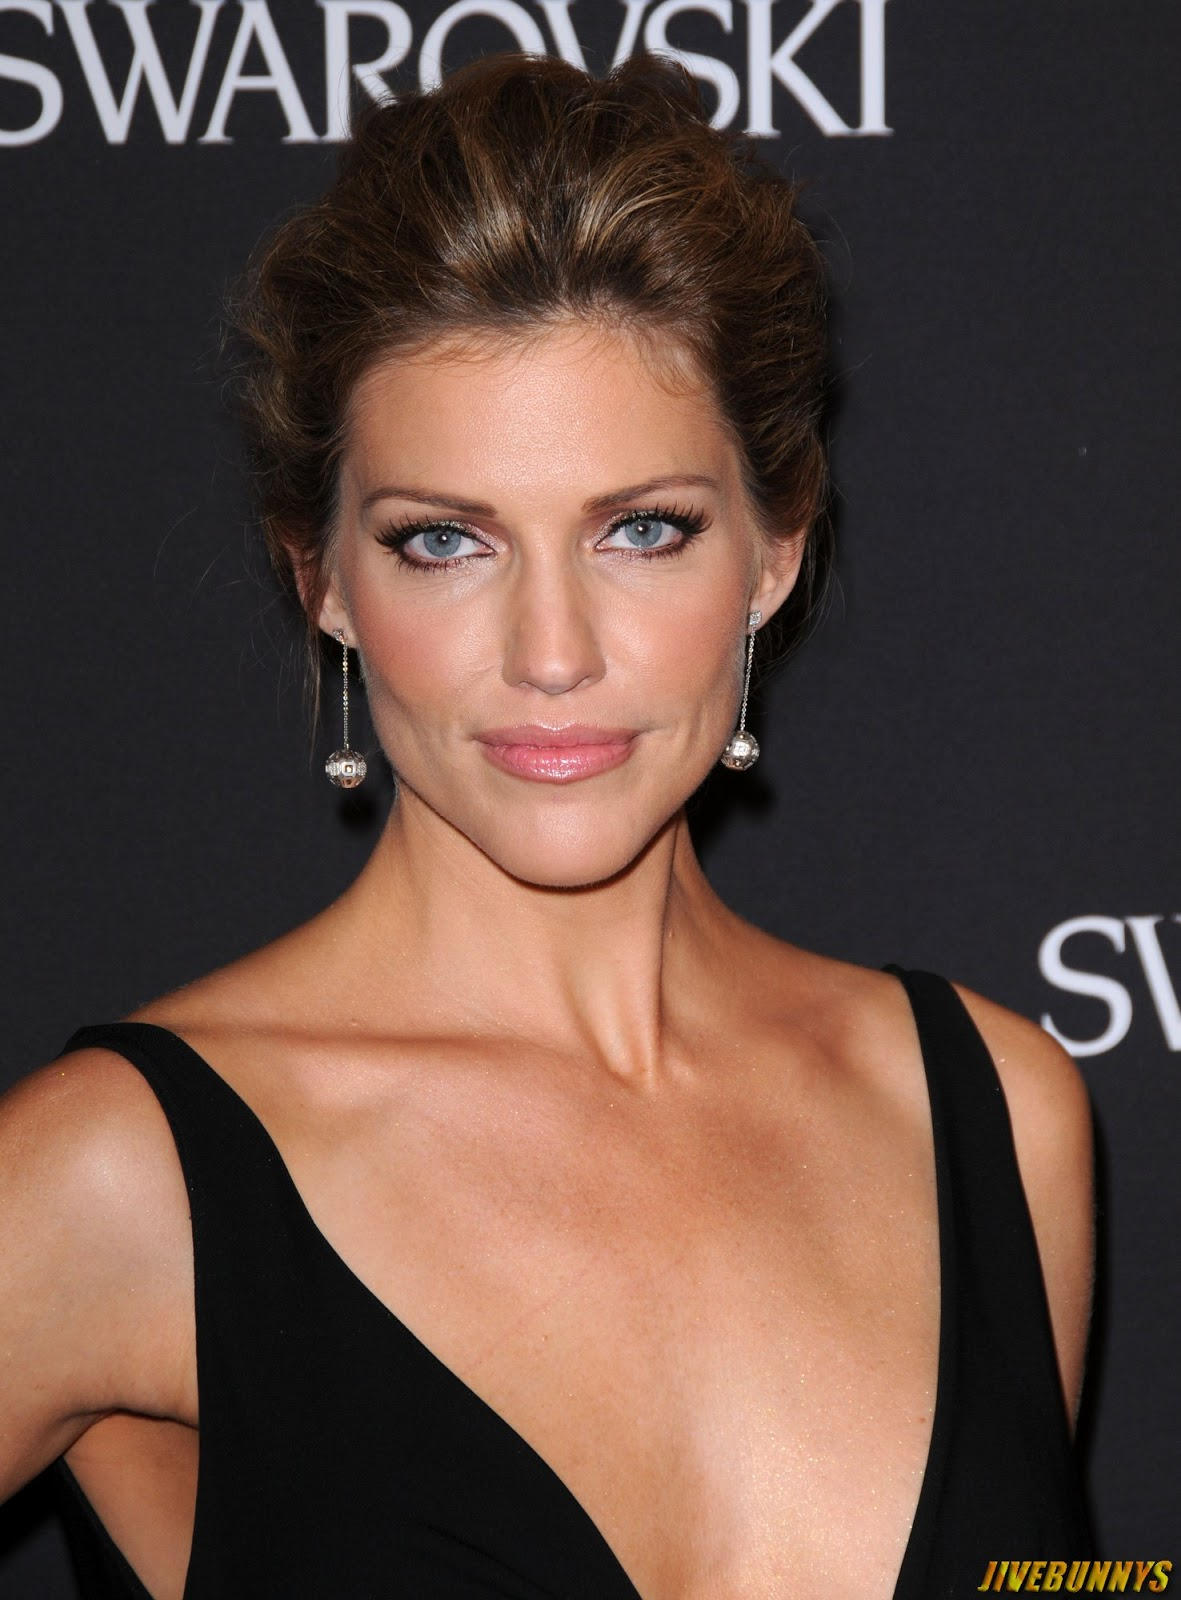 Jivebunnys Female Celebrity Picture Gallery: Tricia Helfer ... Beyonce Knowles